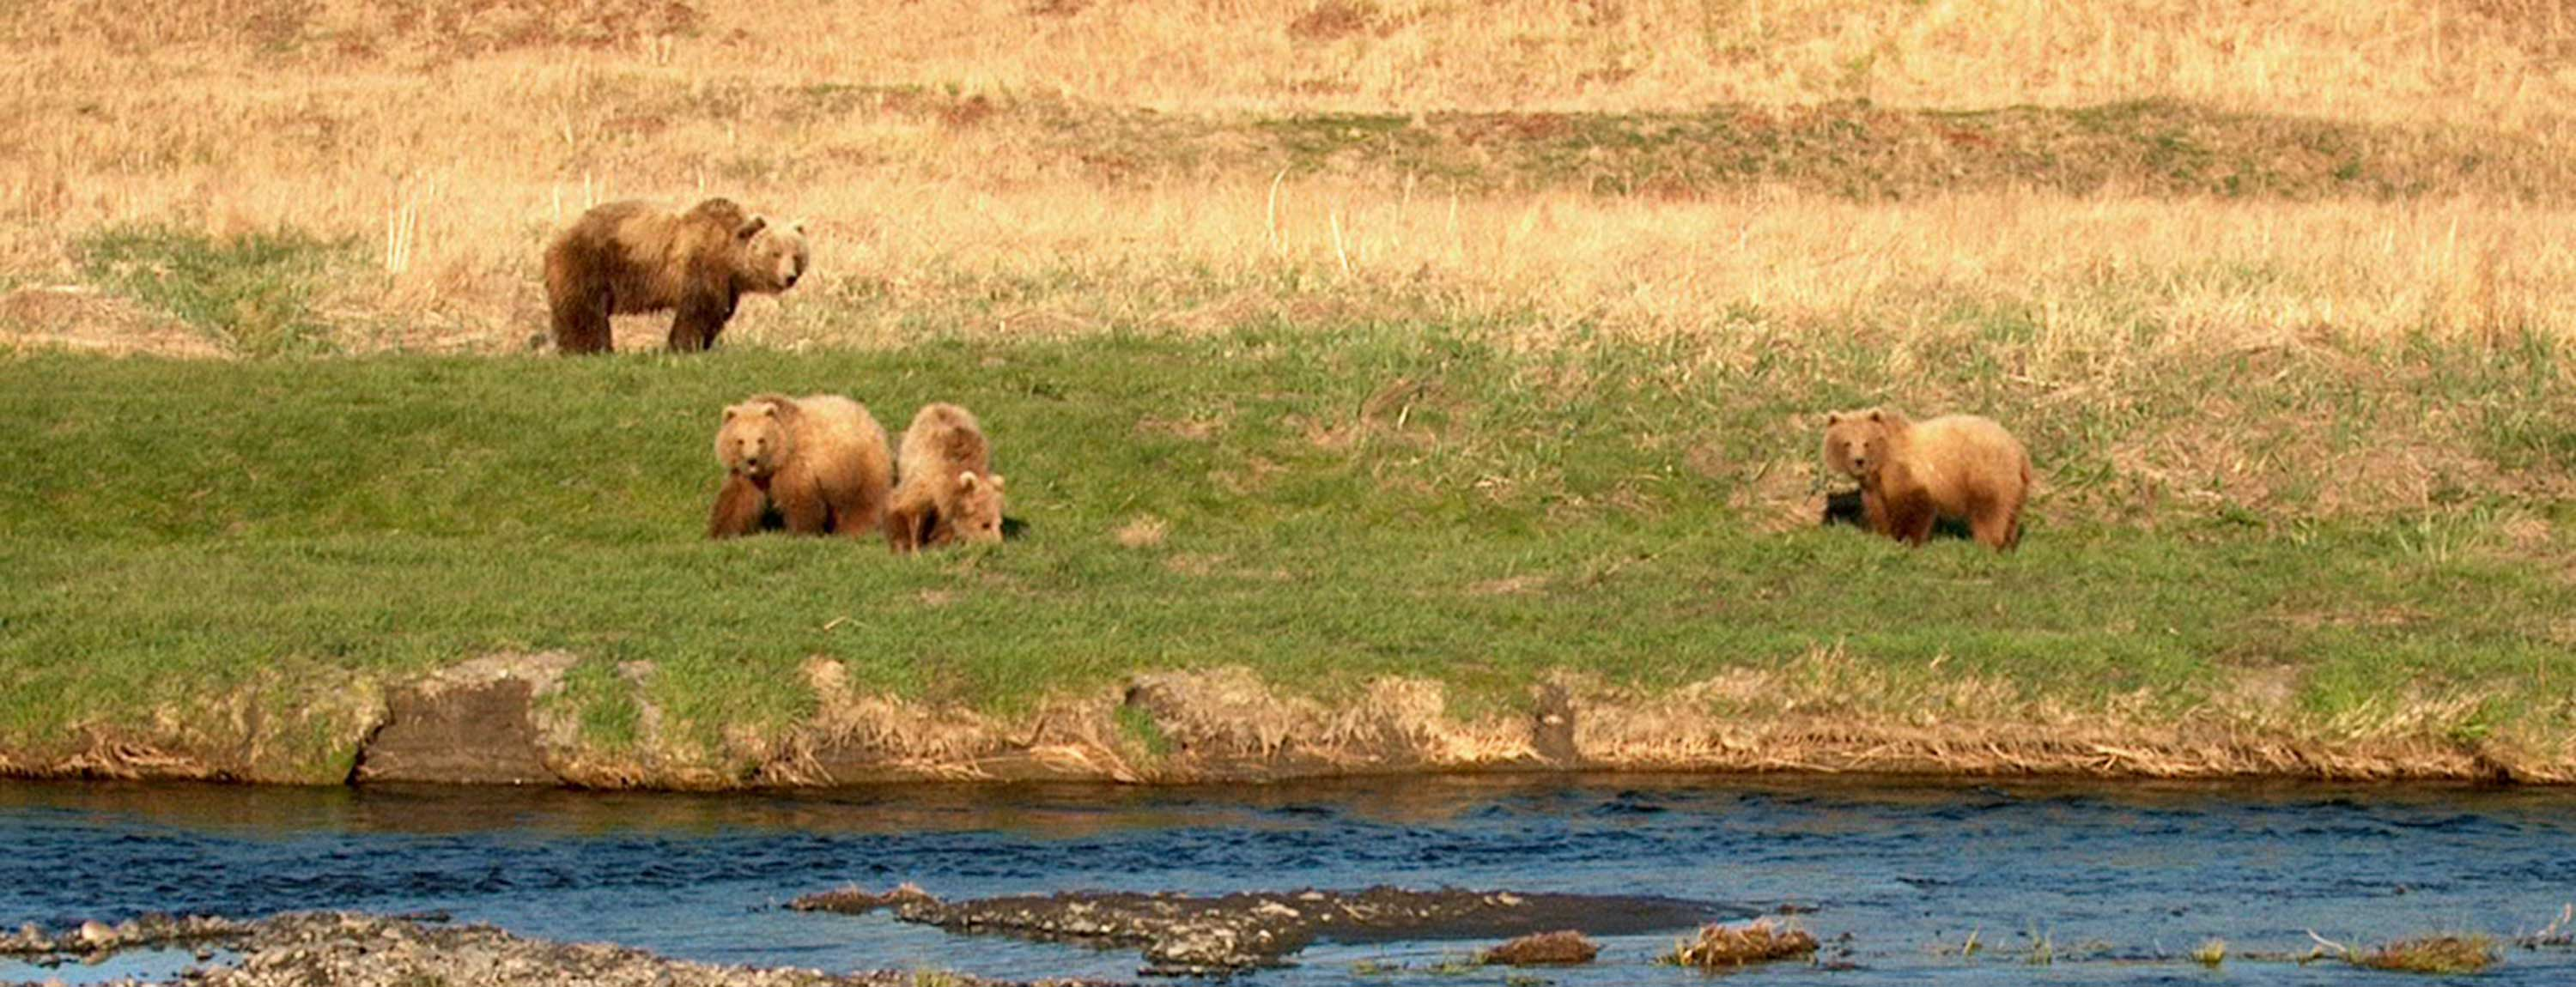 Brown Bears on the Kodiak Archipelago: Abundance and Resource Use